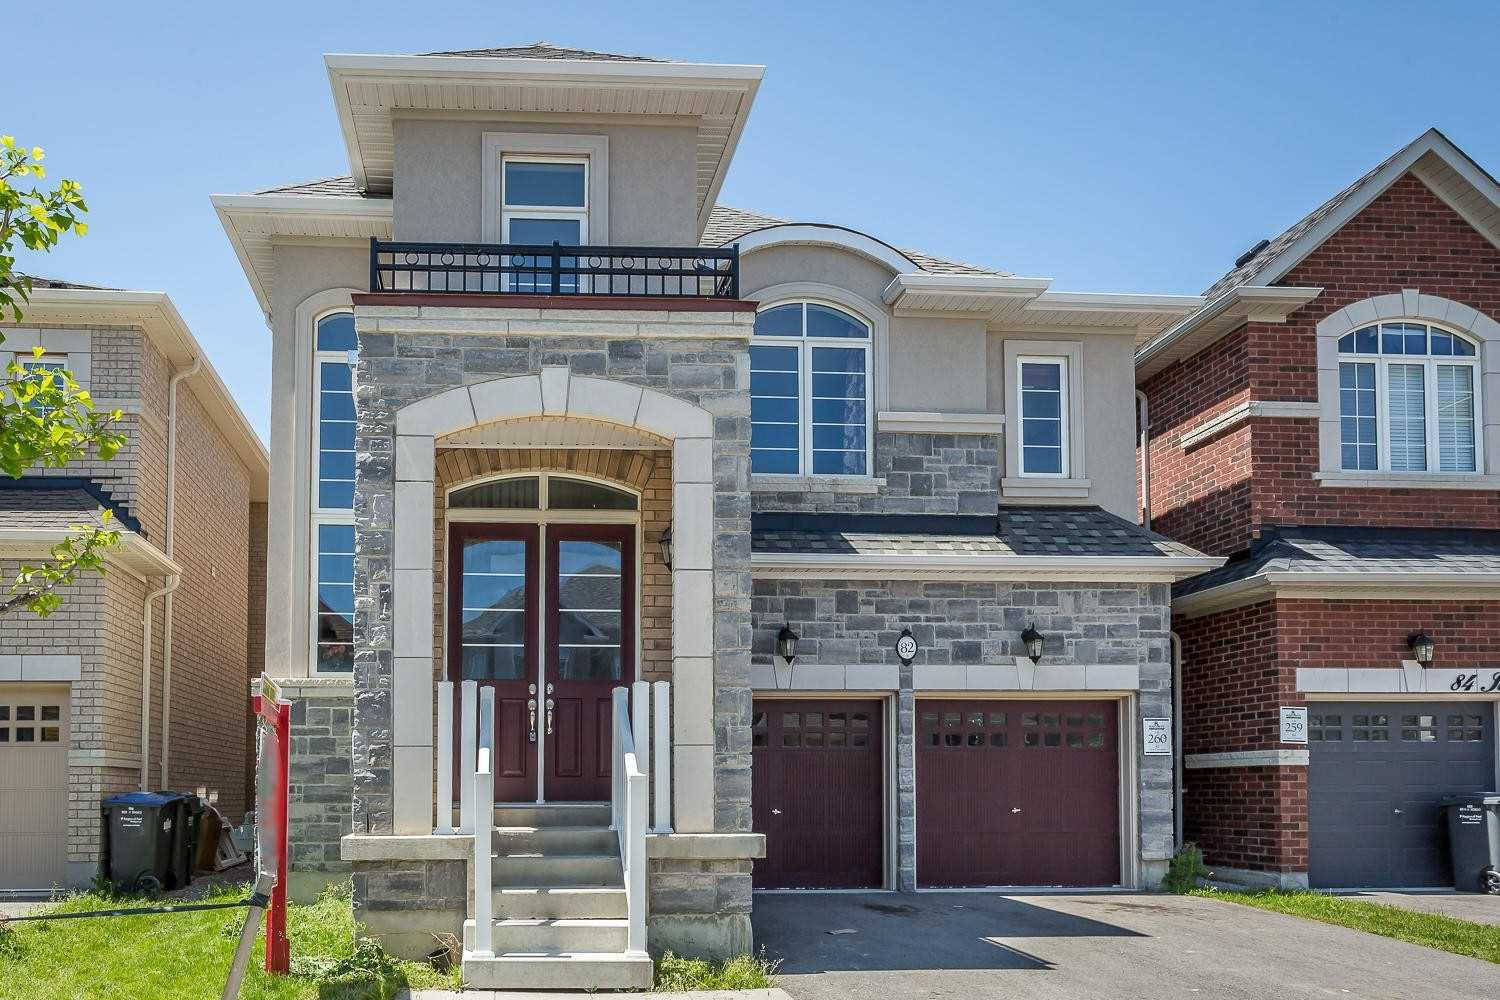 Main Photo: 82 Ivor Crescent in Brampton: Northwest Brampton House (2-Storey) for sale : MLS®# W4498160